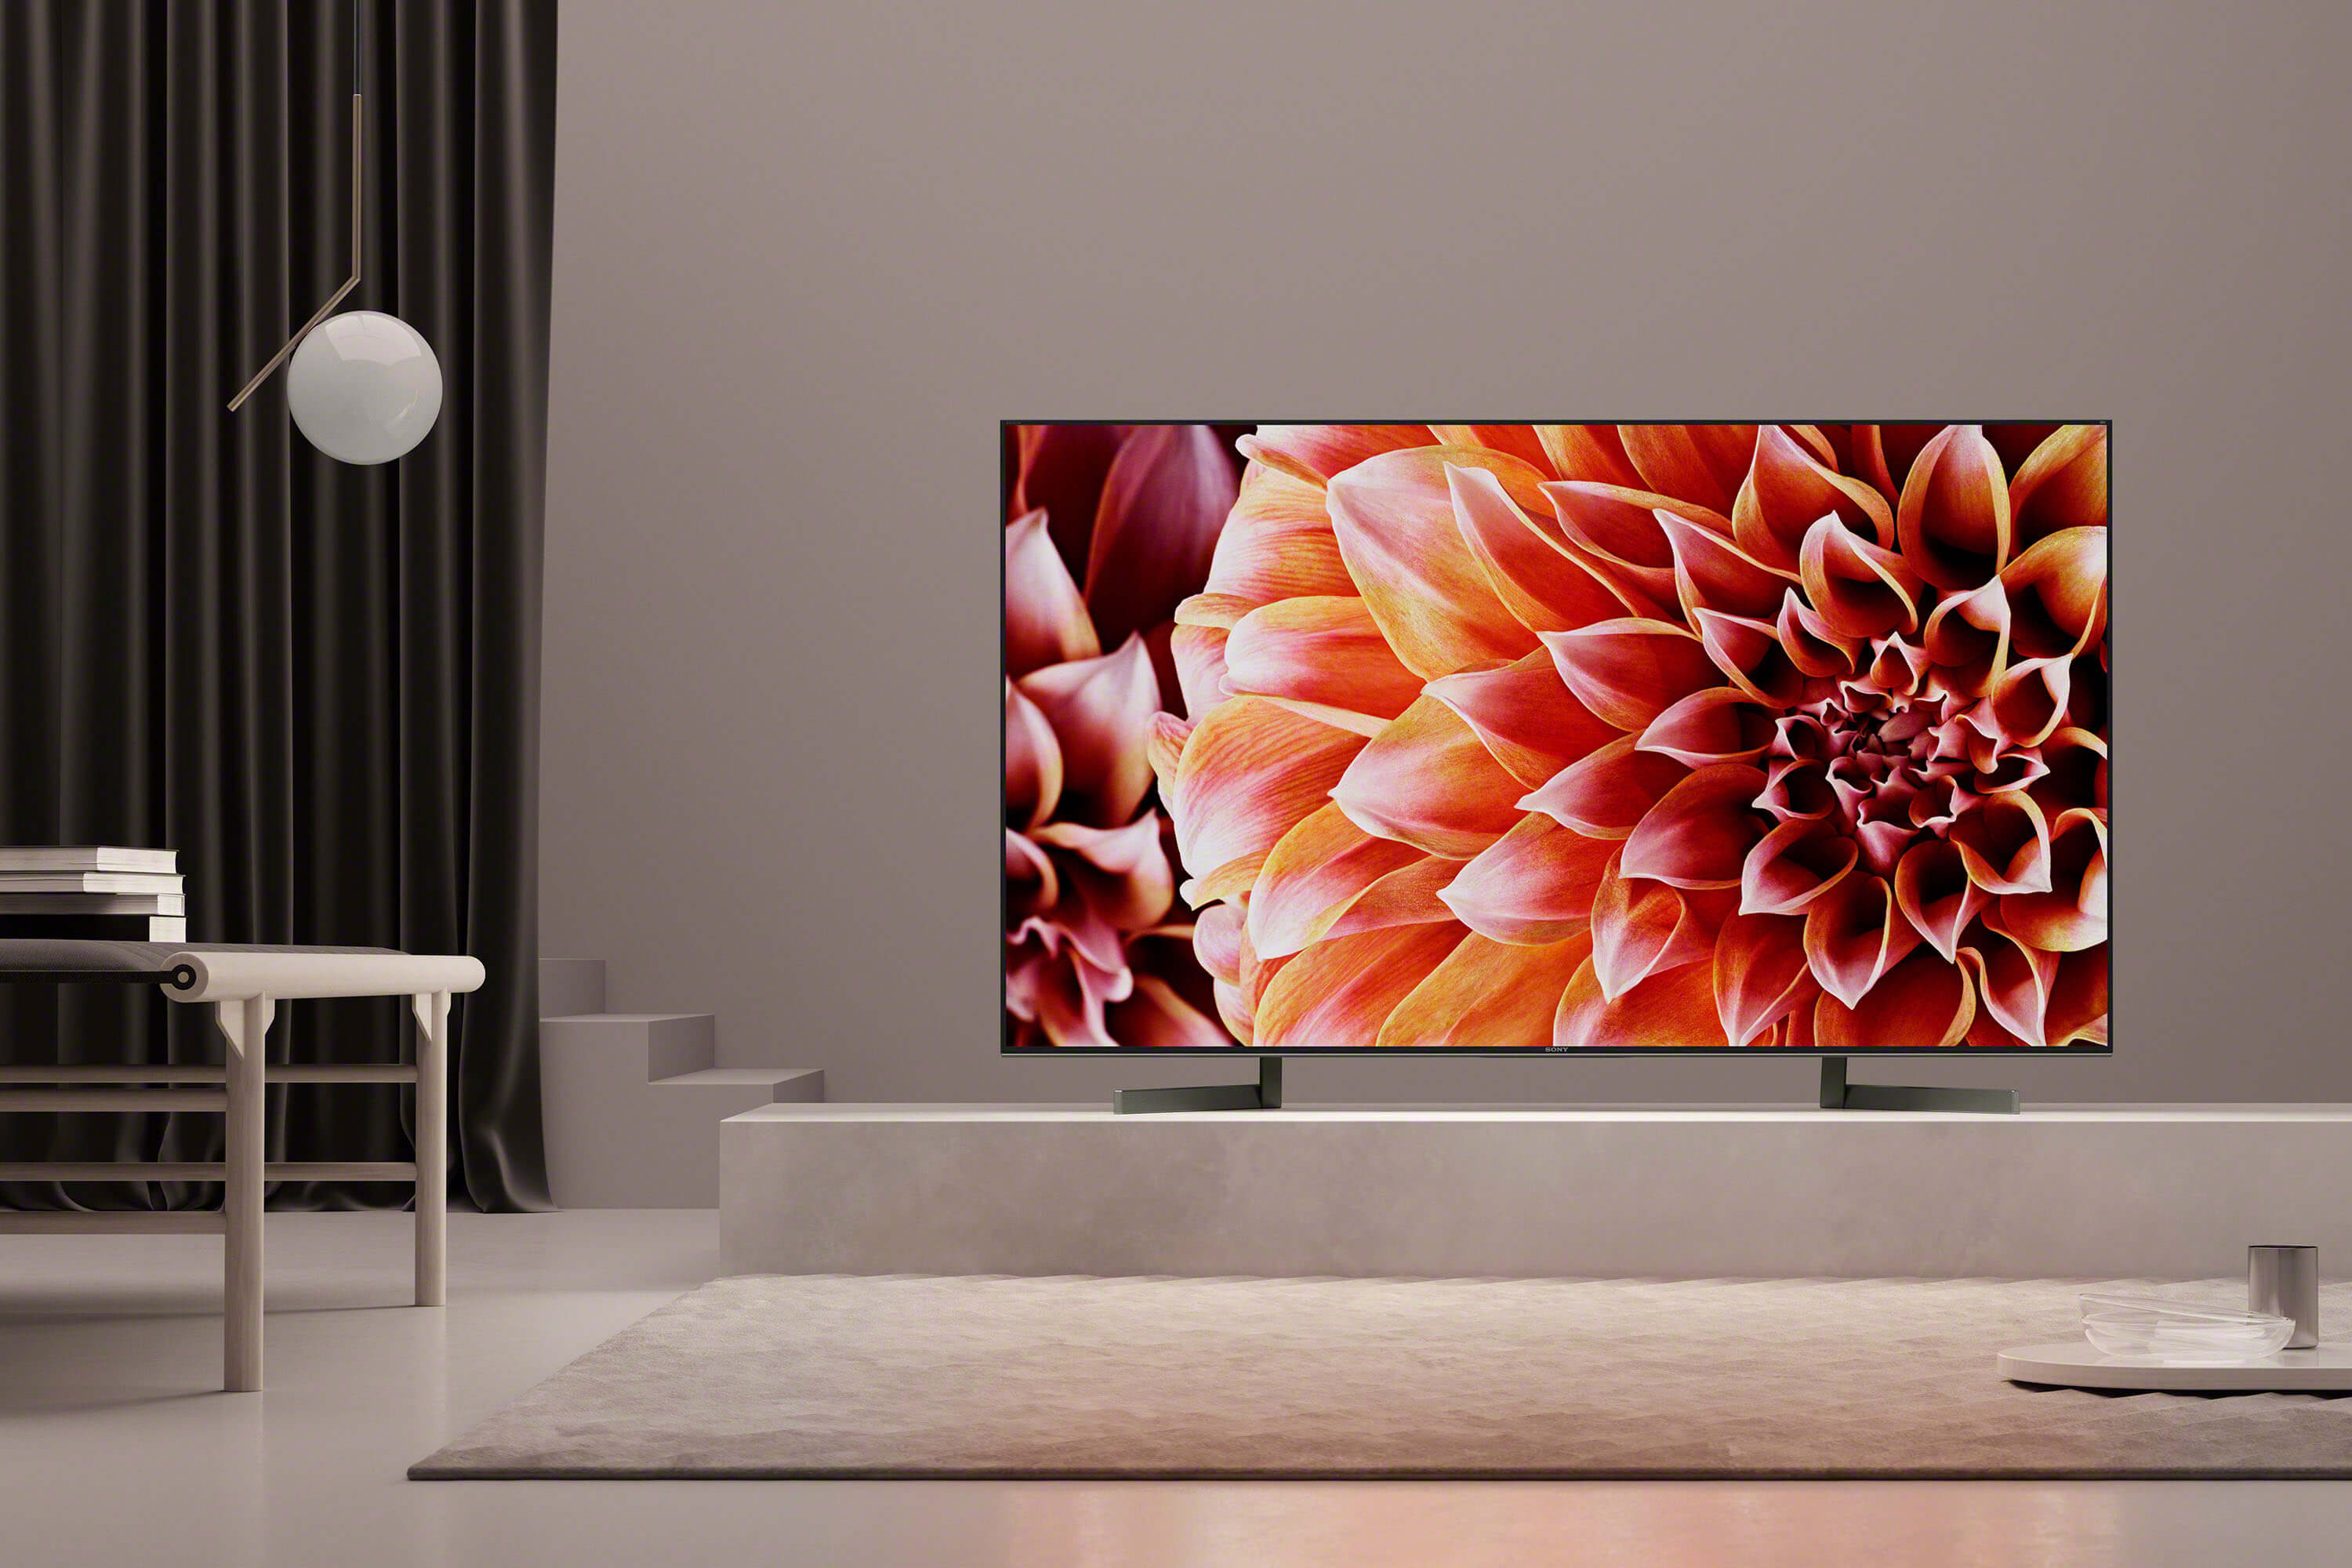 Sony announces the new X900F 4K HDTV